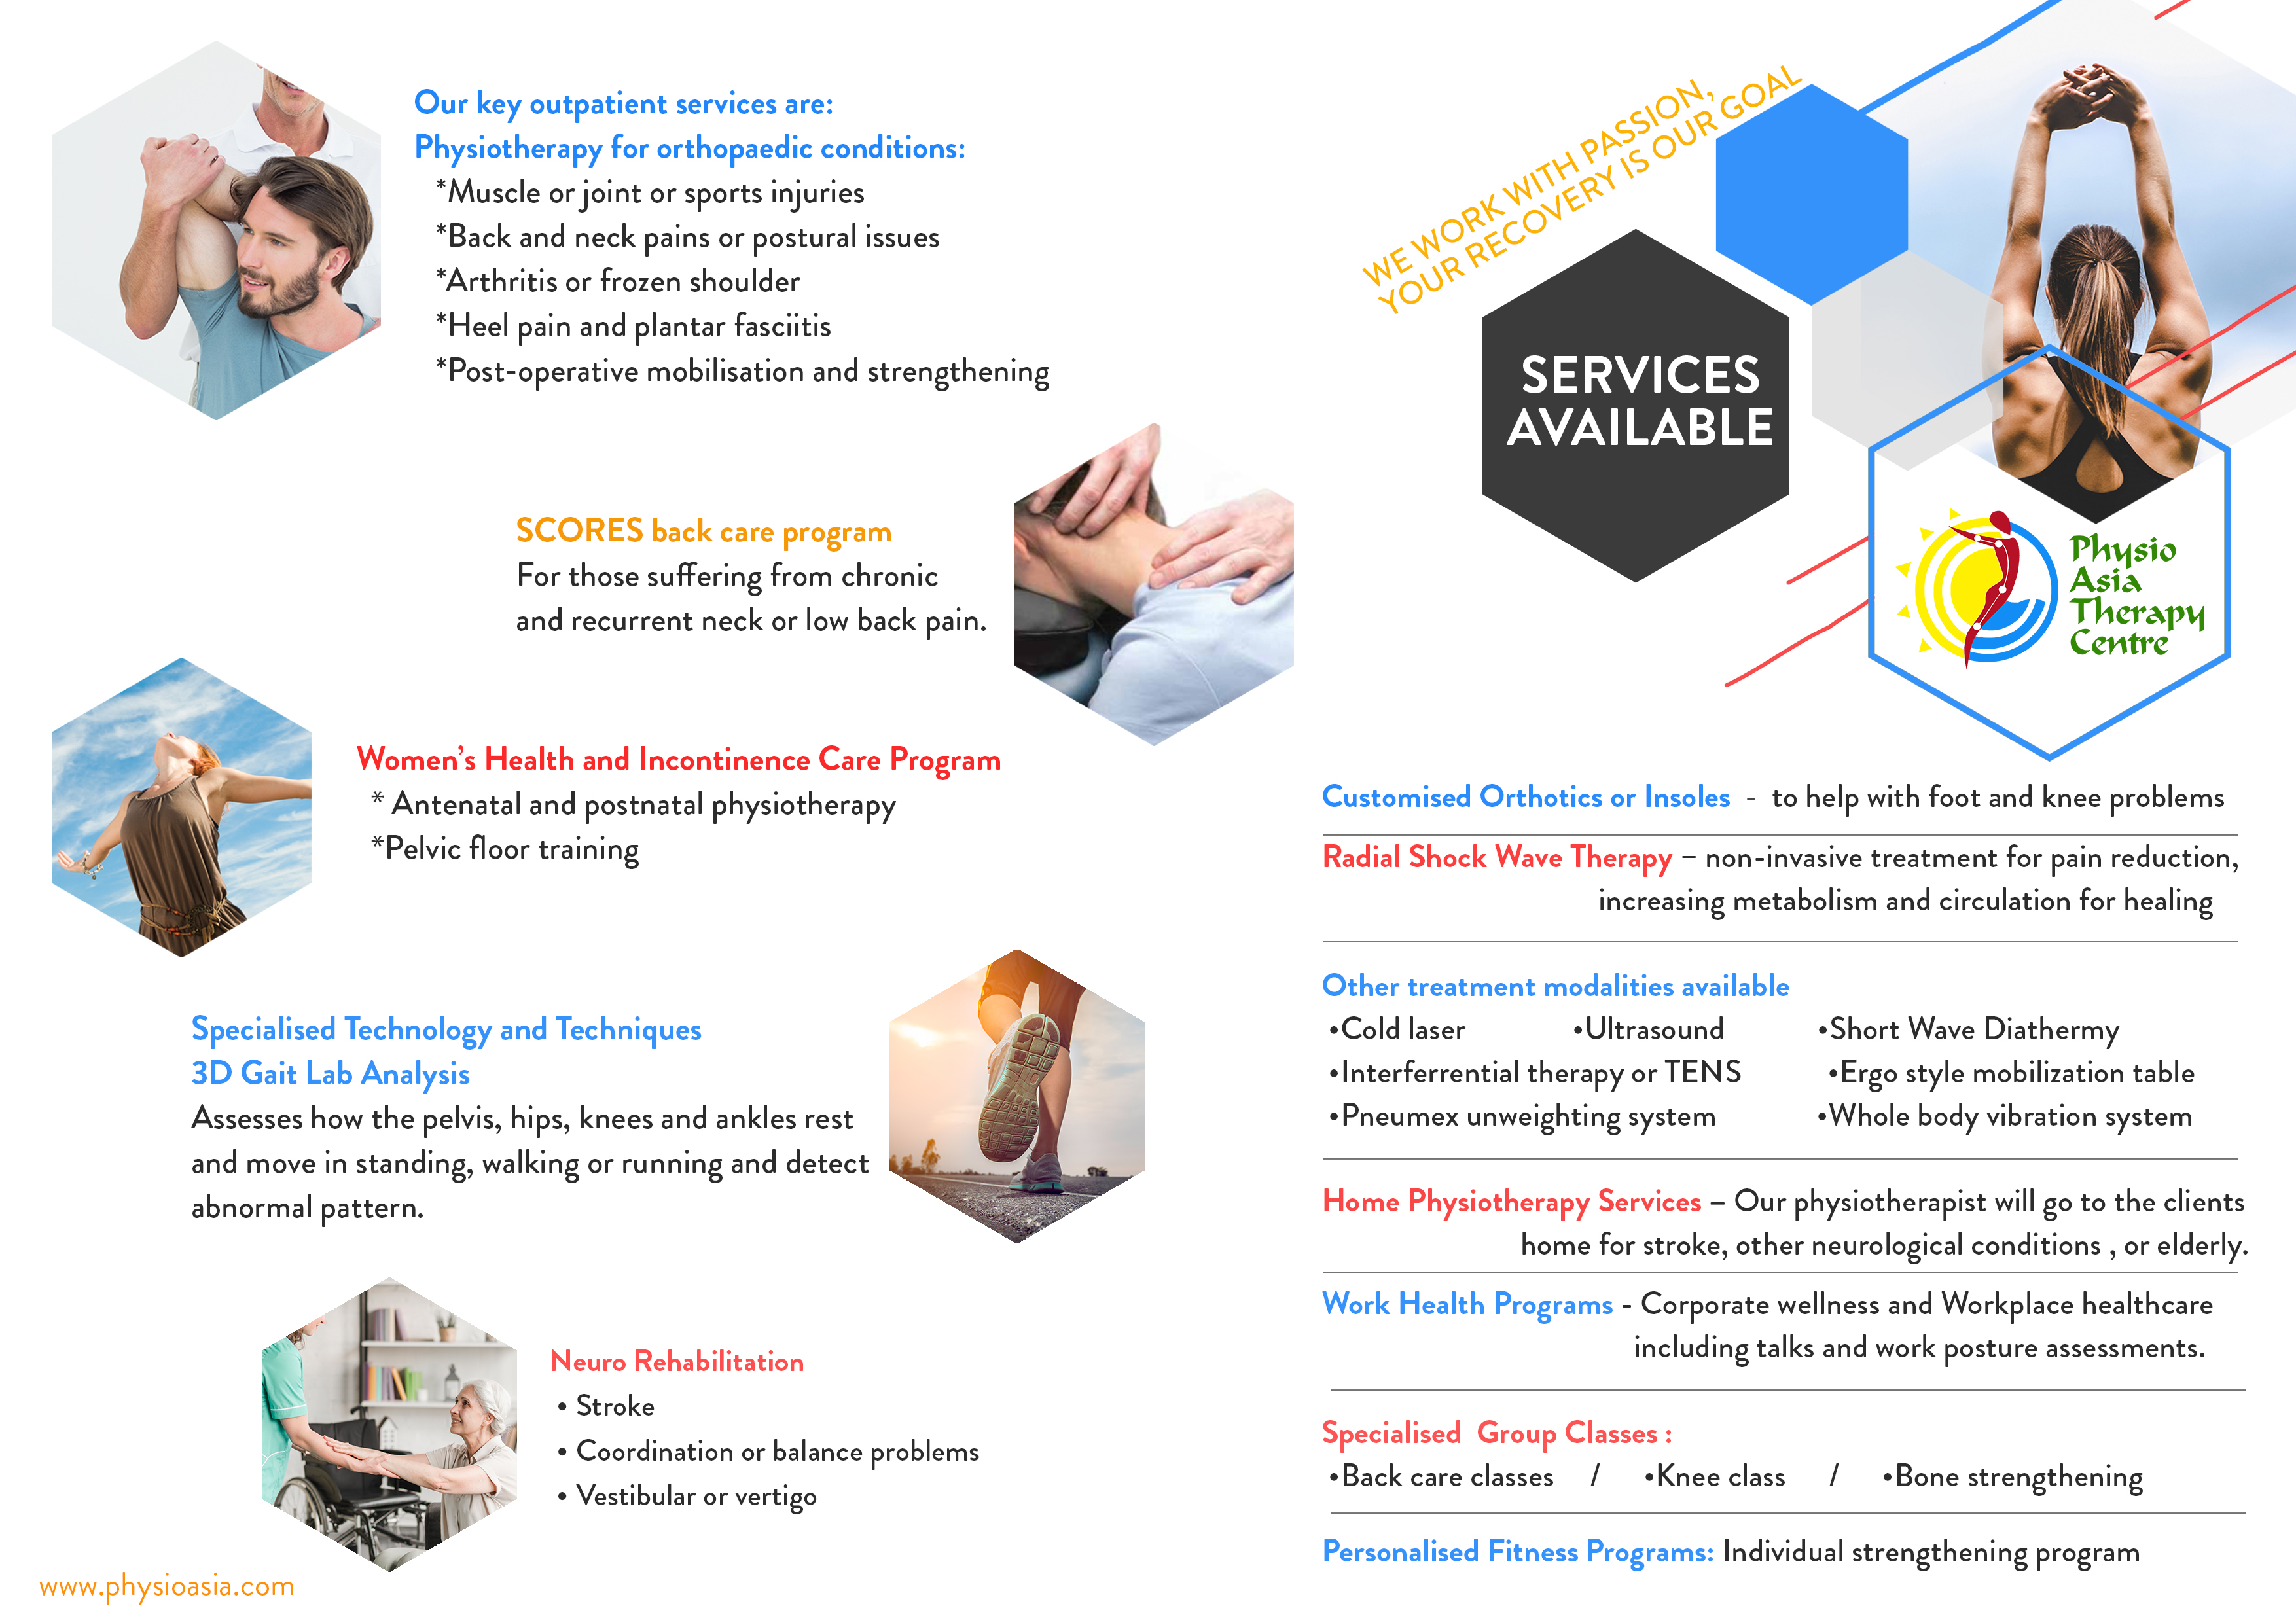 Physio Asia Services Brochure